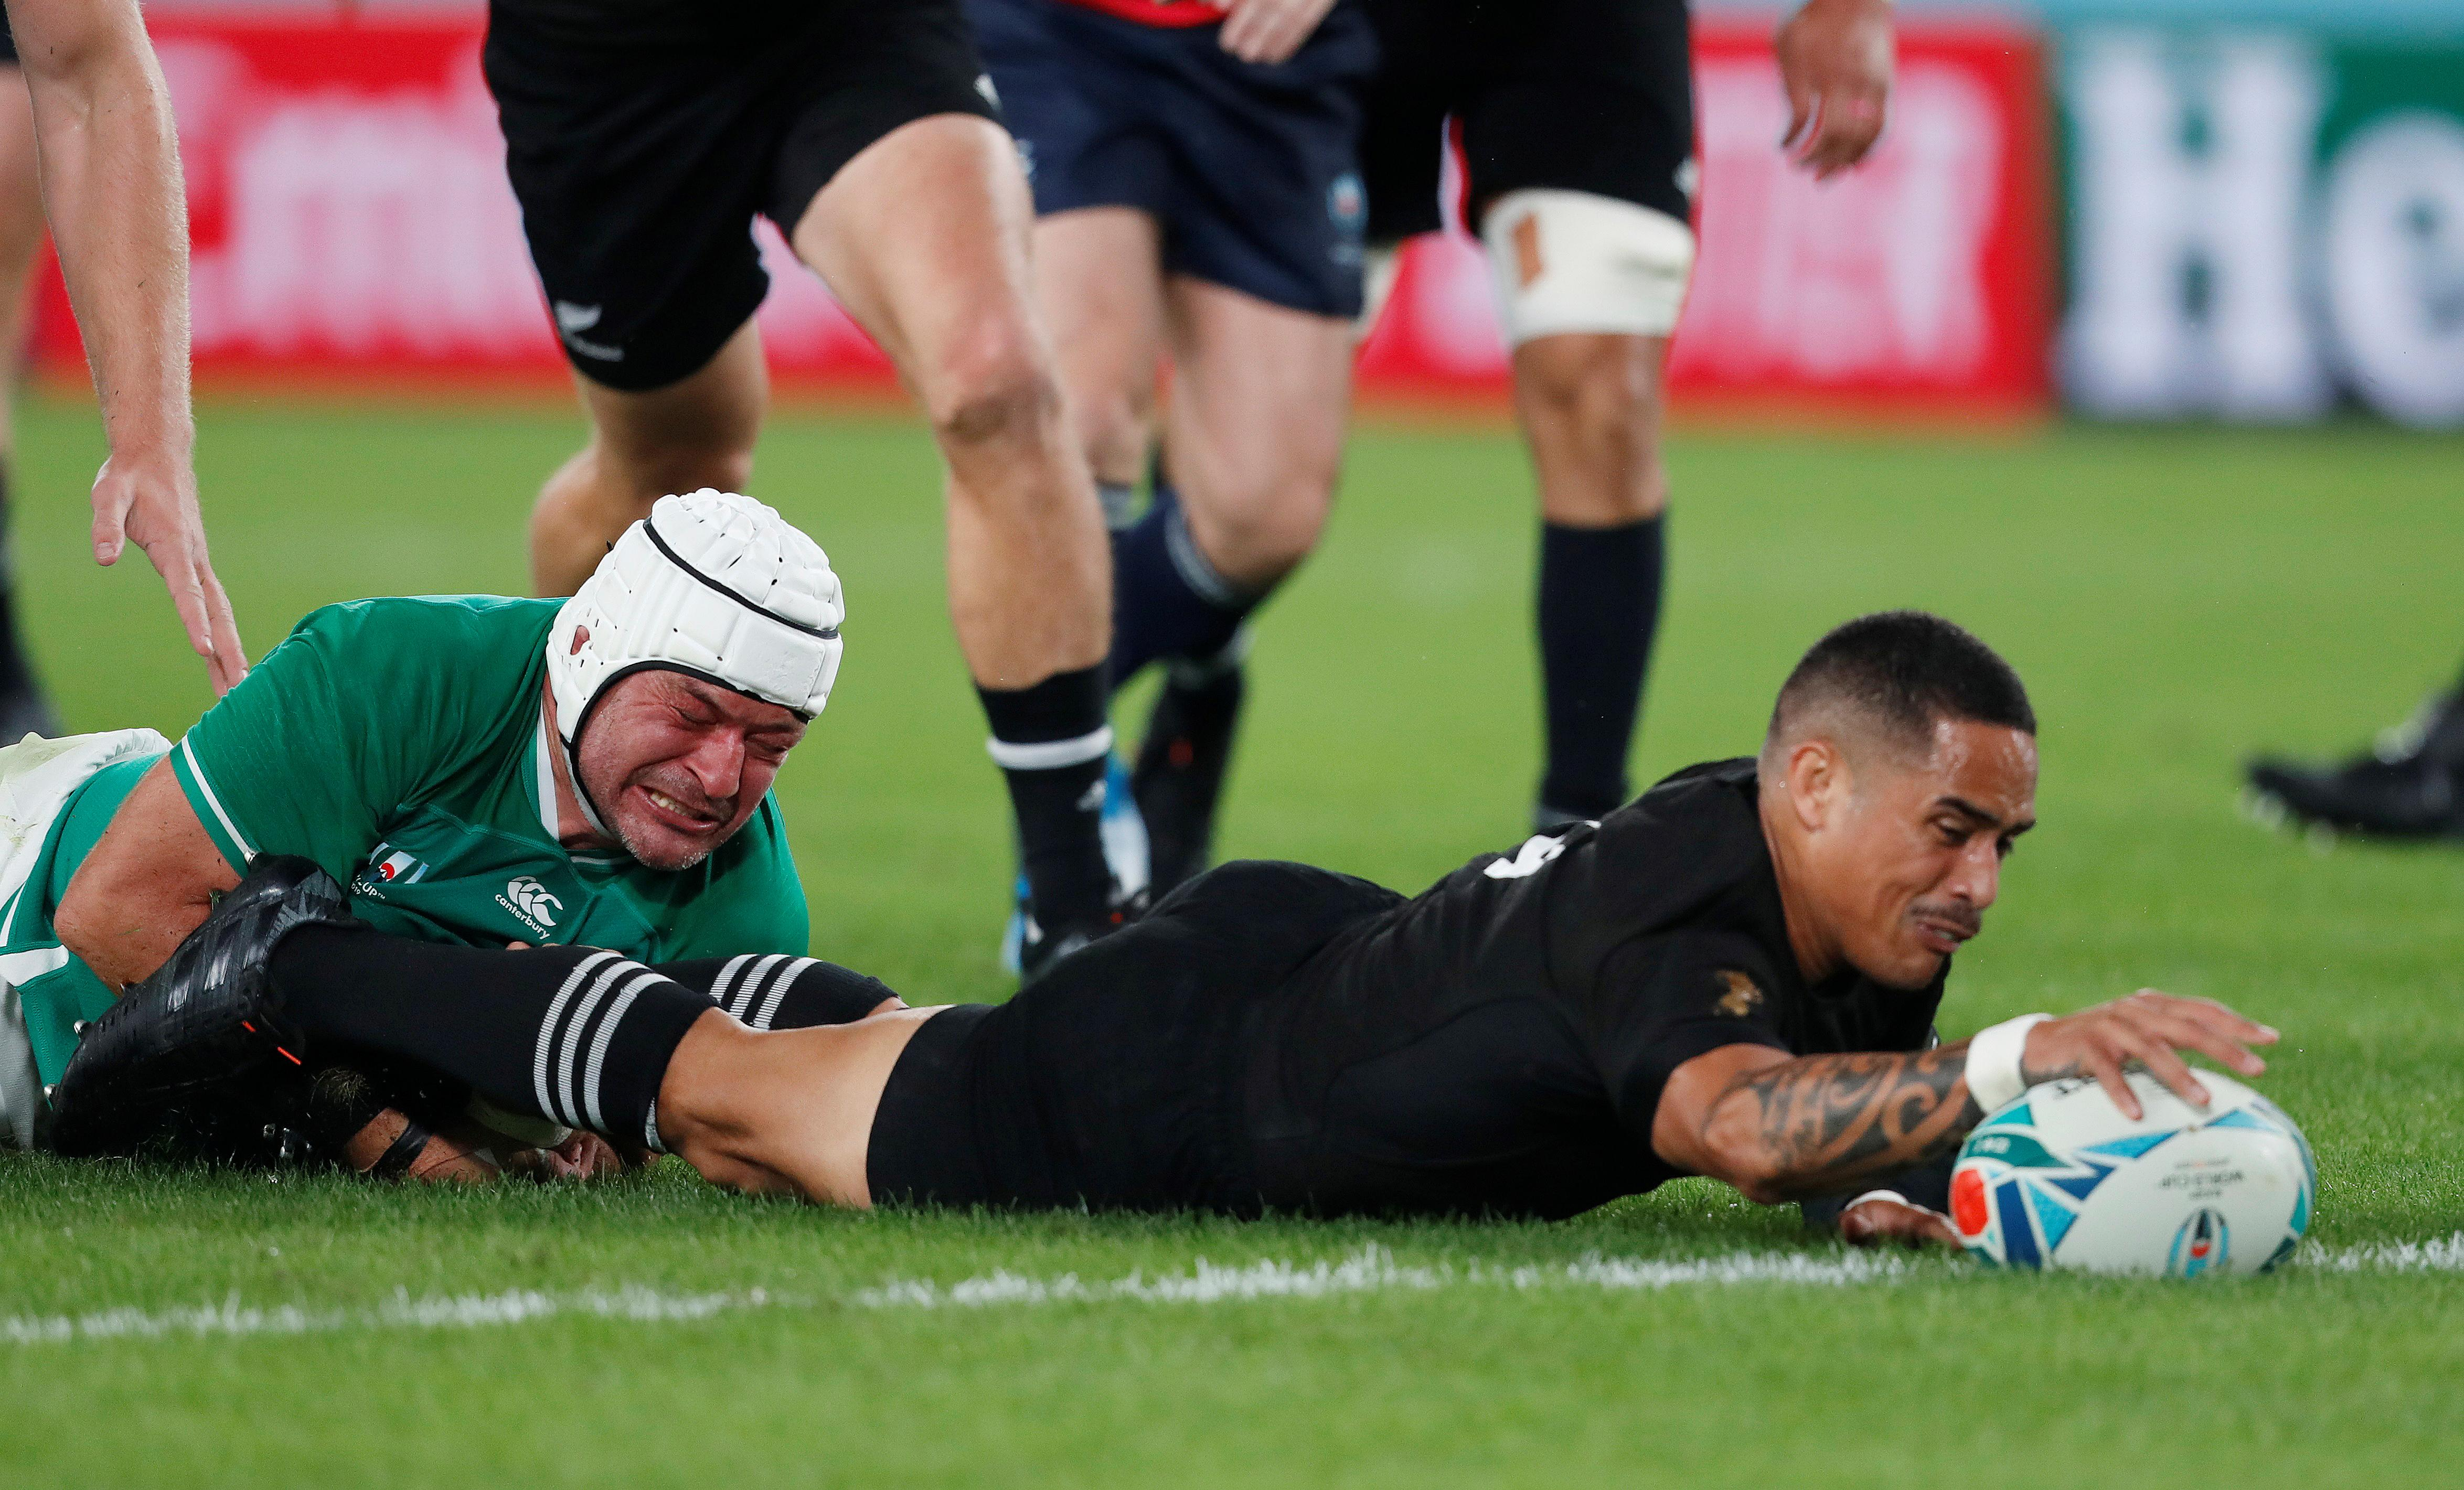 Seven-try All Blacks outclass Ireland to reach World Cup semis